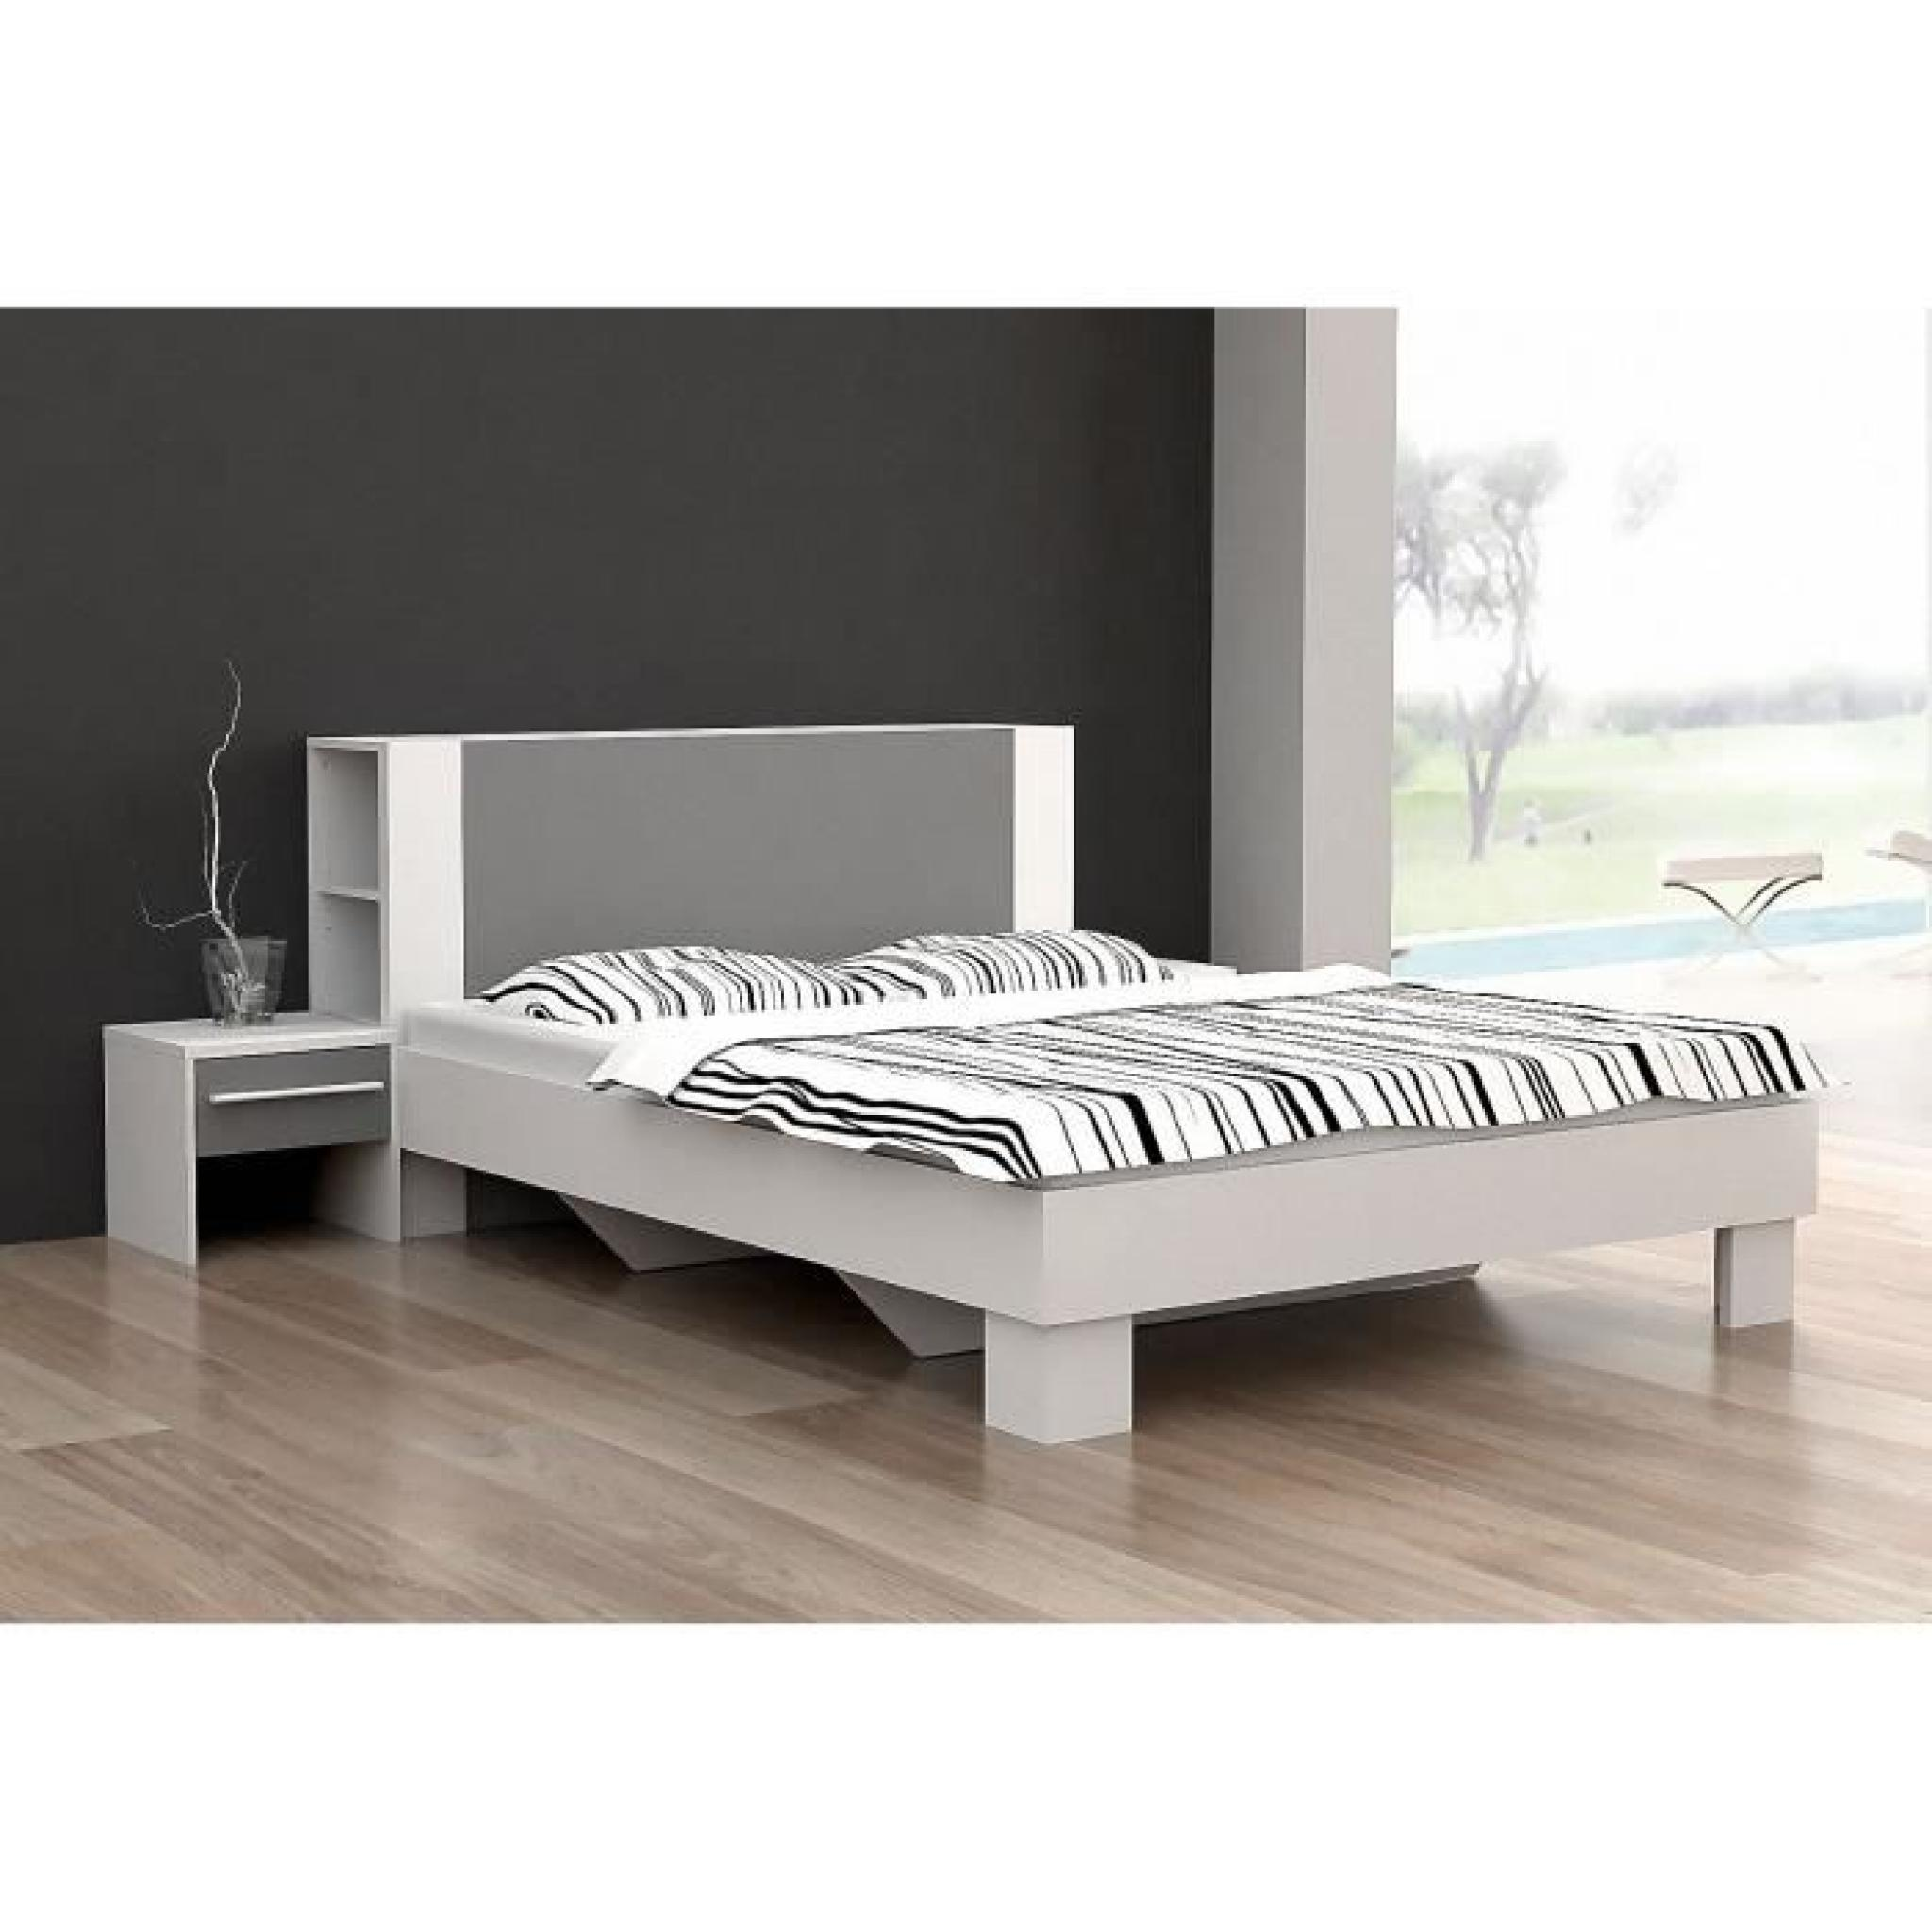 finlandek lit pehme 140x190cm blanc gris achat vente lit pas cher couleur et. Black Bedroom Furniture Sets. Home Design Ideas